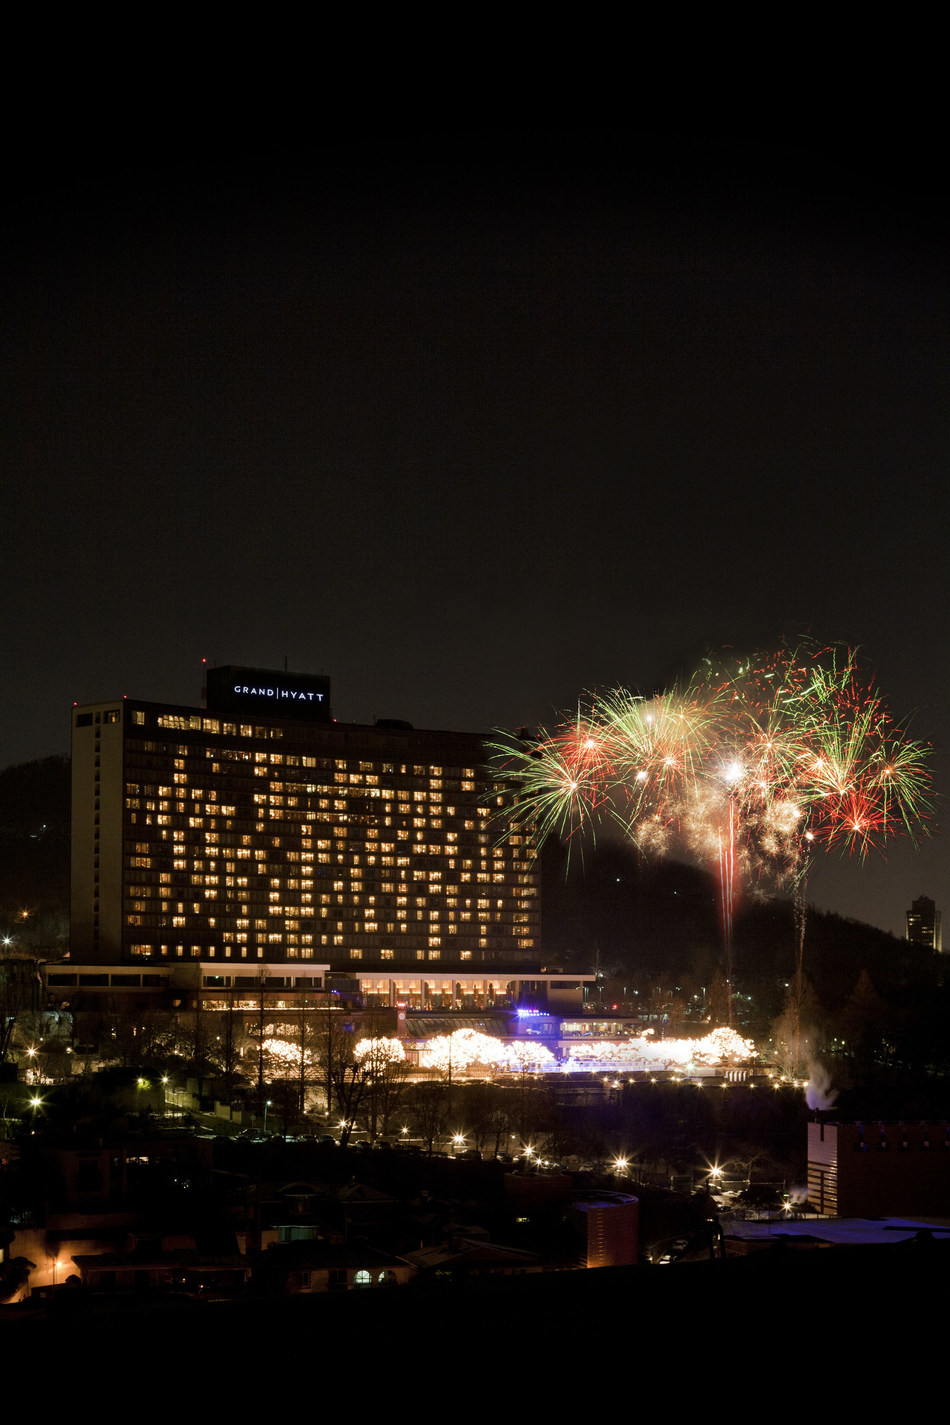 Grand Hyatt Seoul - Countdown on Ice event for New Year